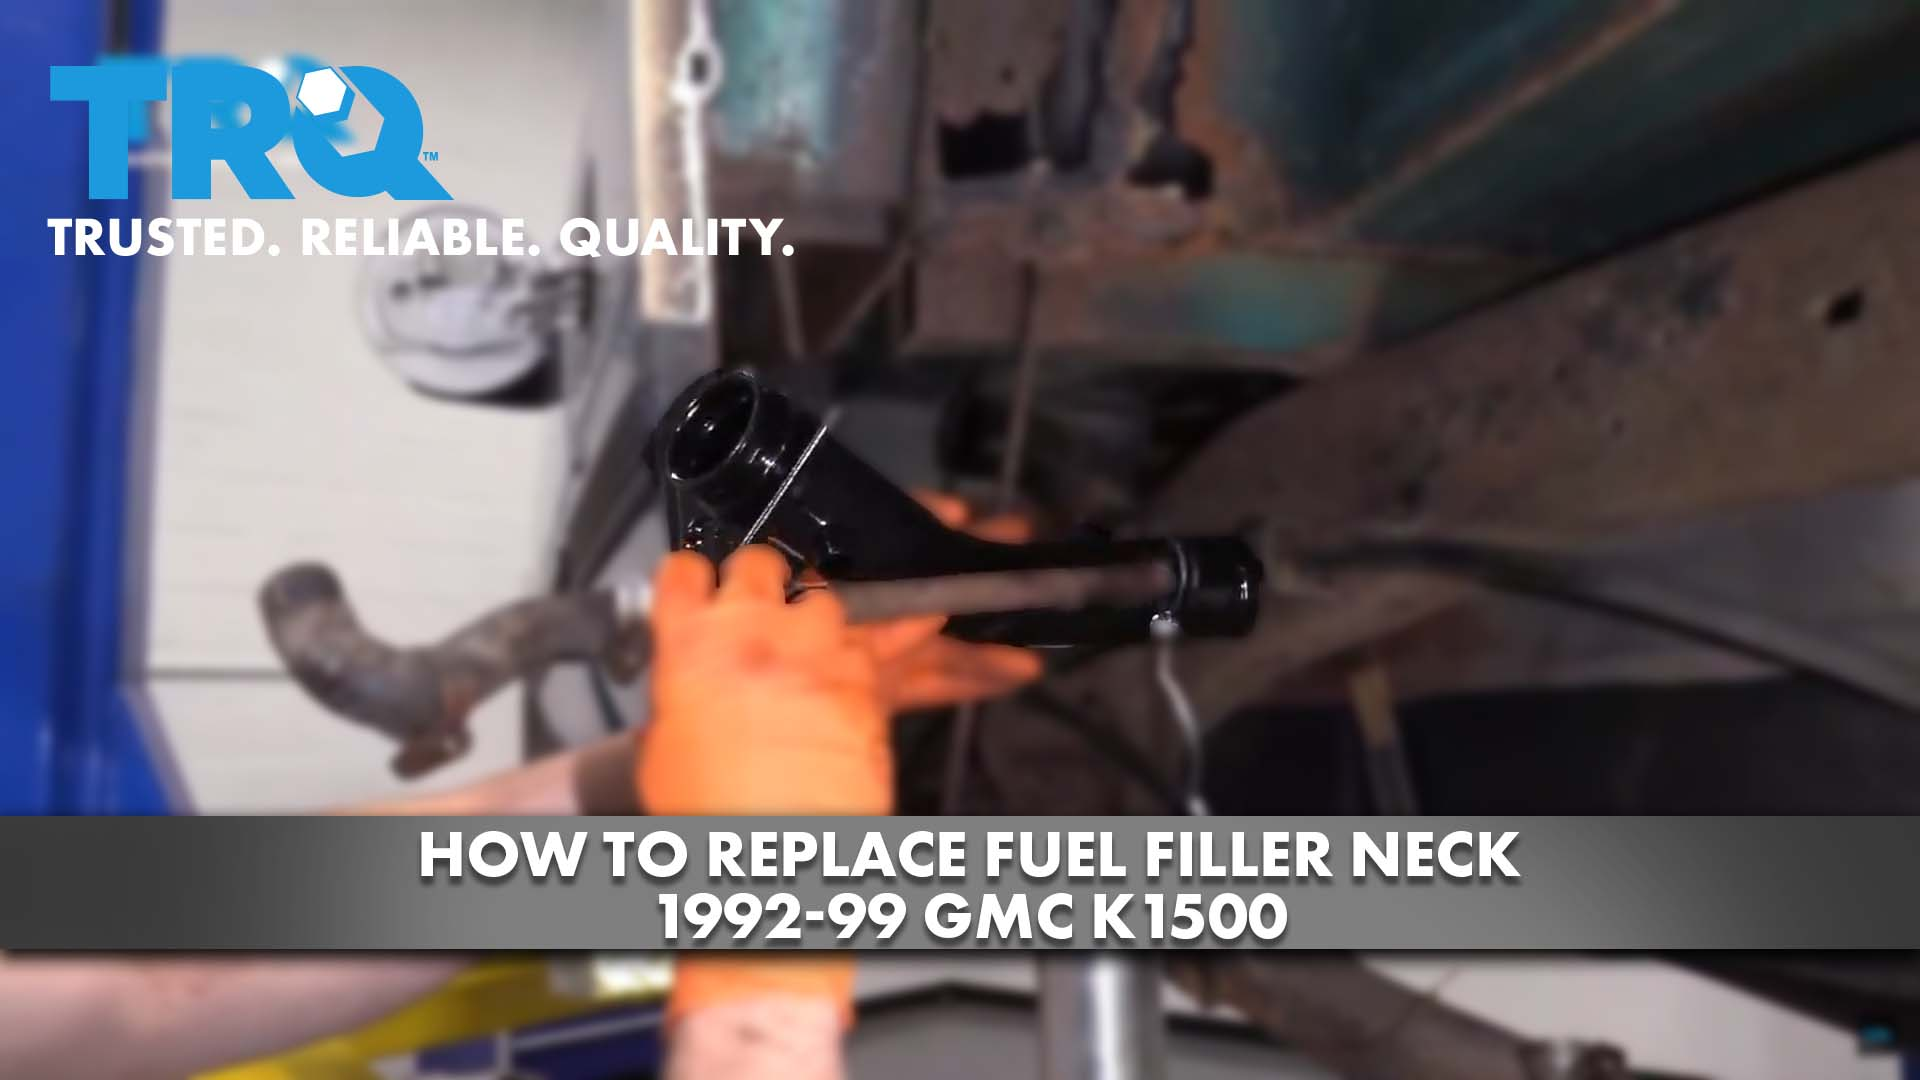 How To Replace Fuel Filler Neck 1992-99 GMC K1500